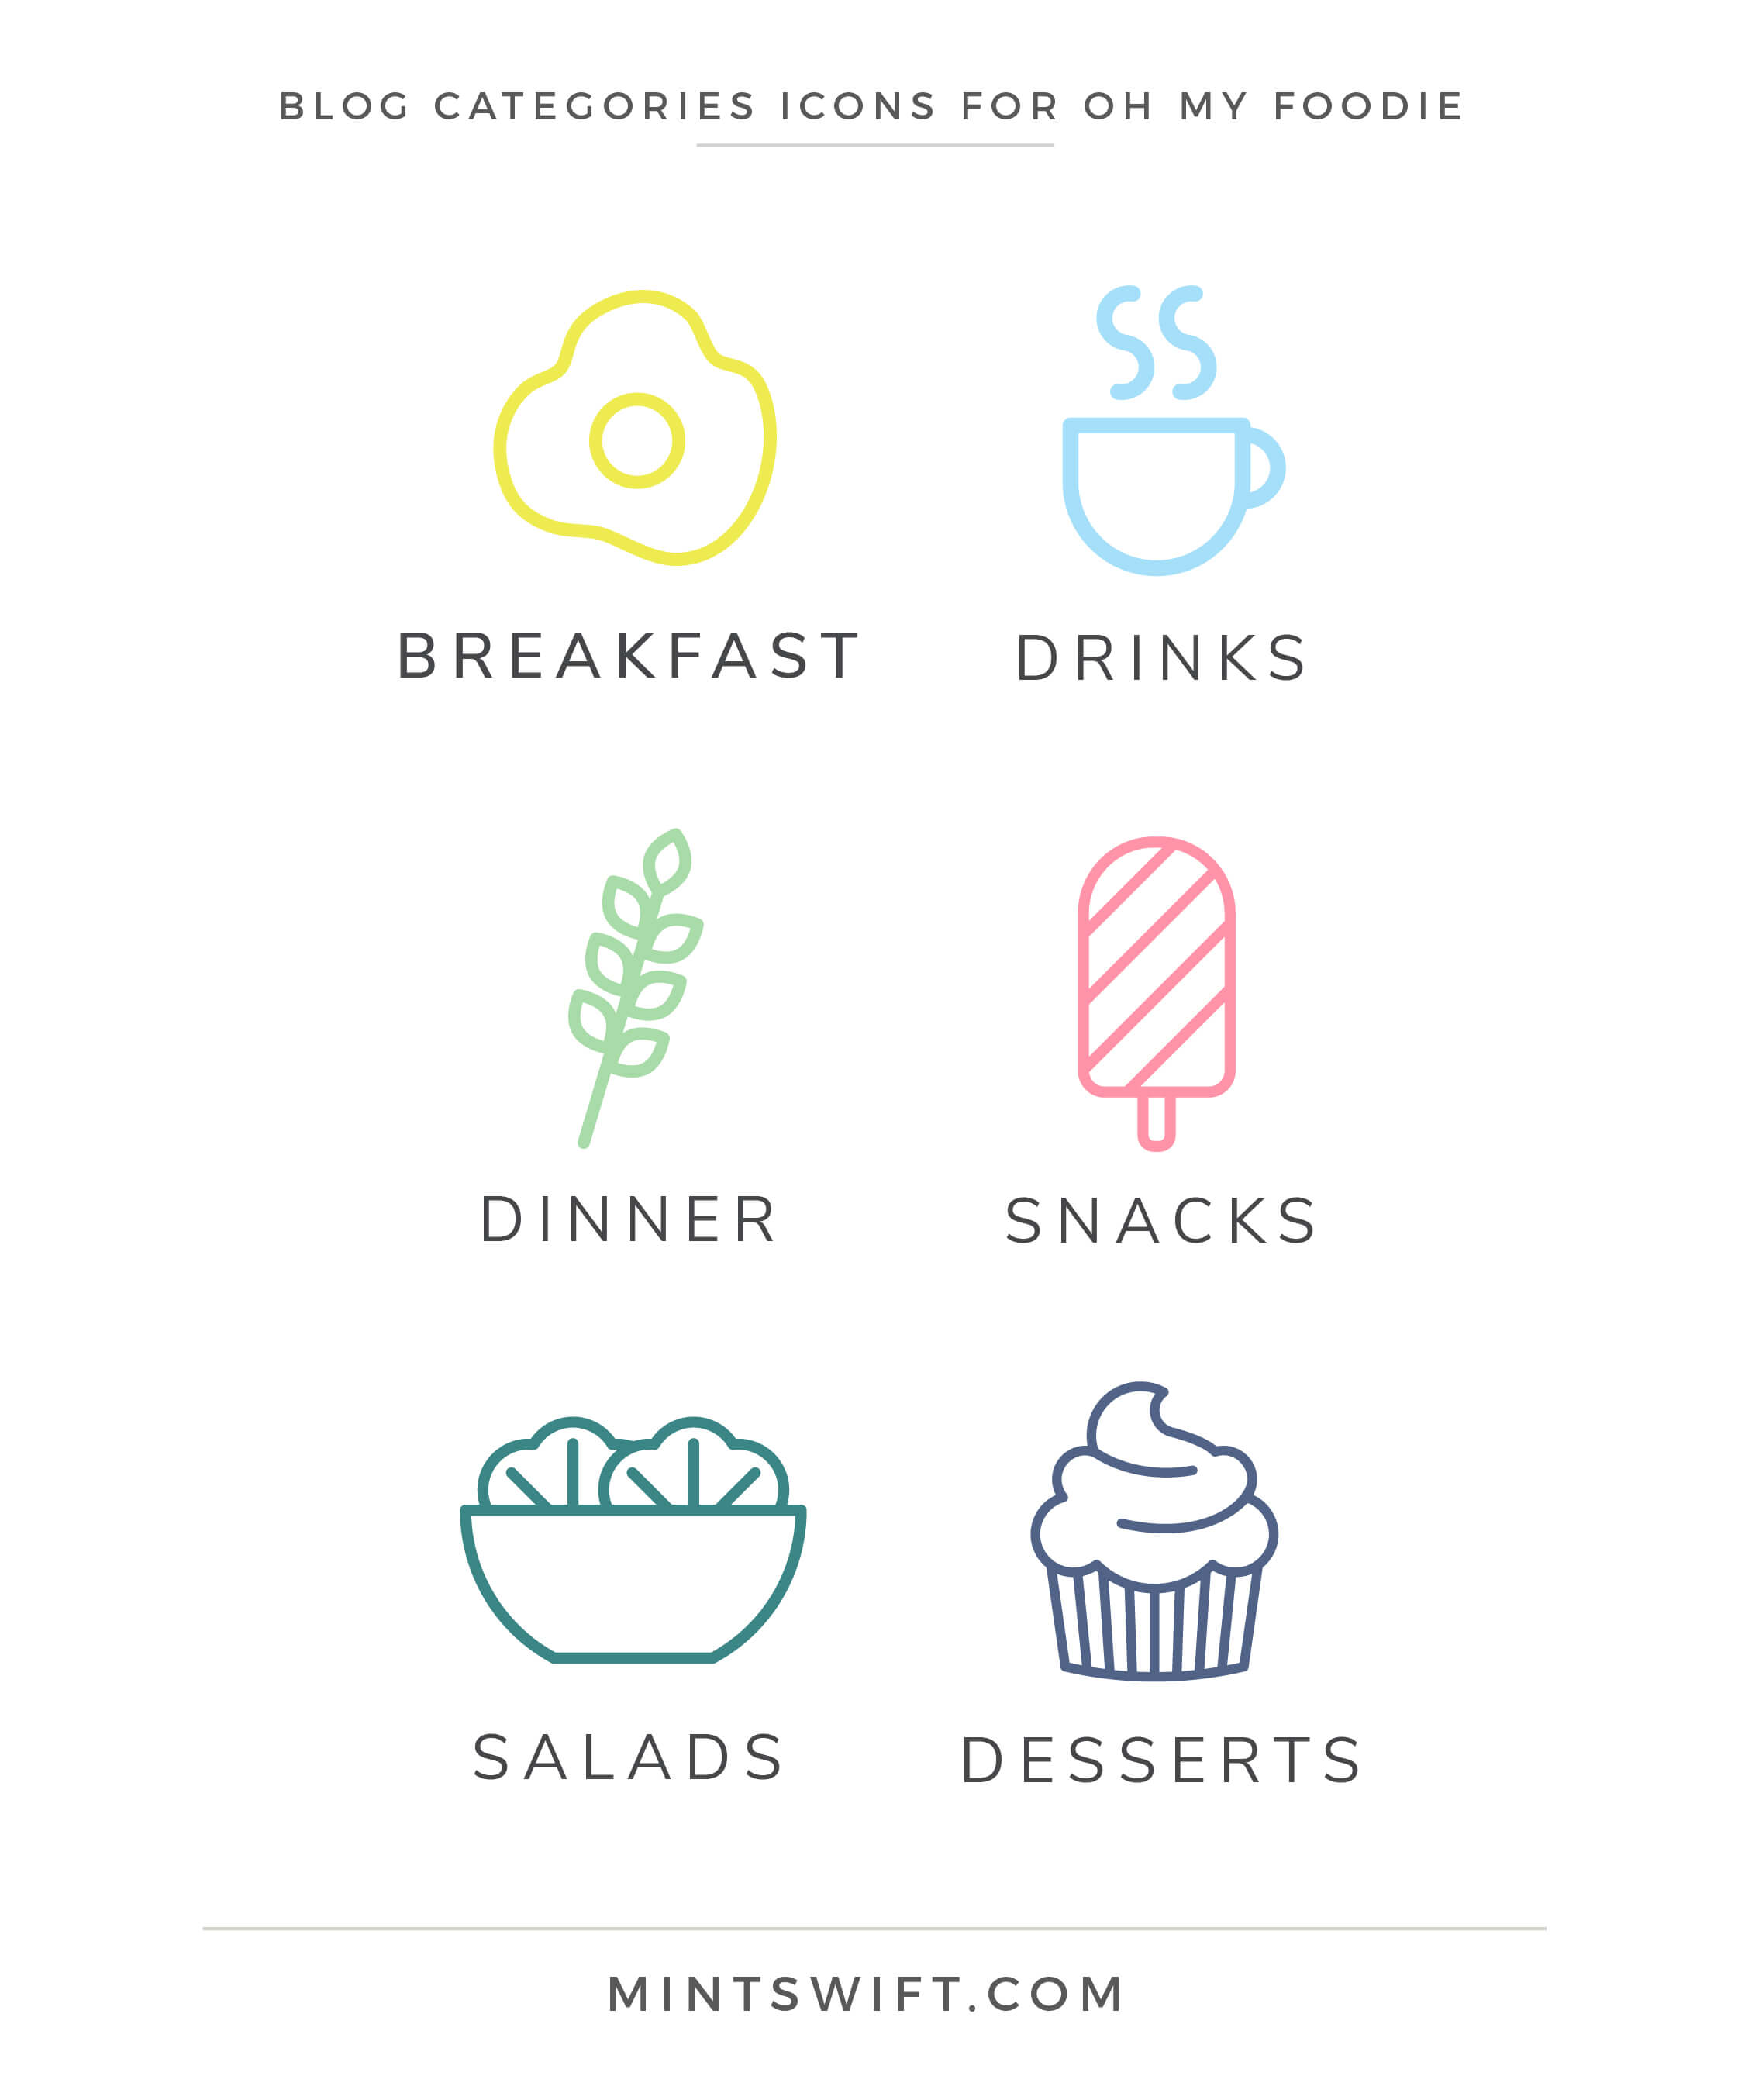 Oh My Foodie blog categories icons MintSwift